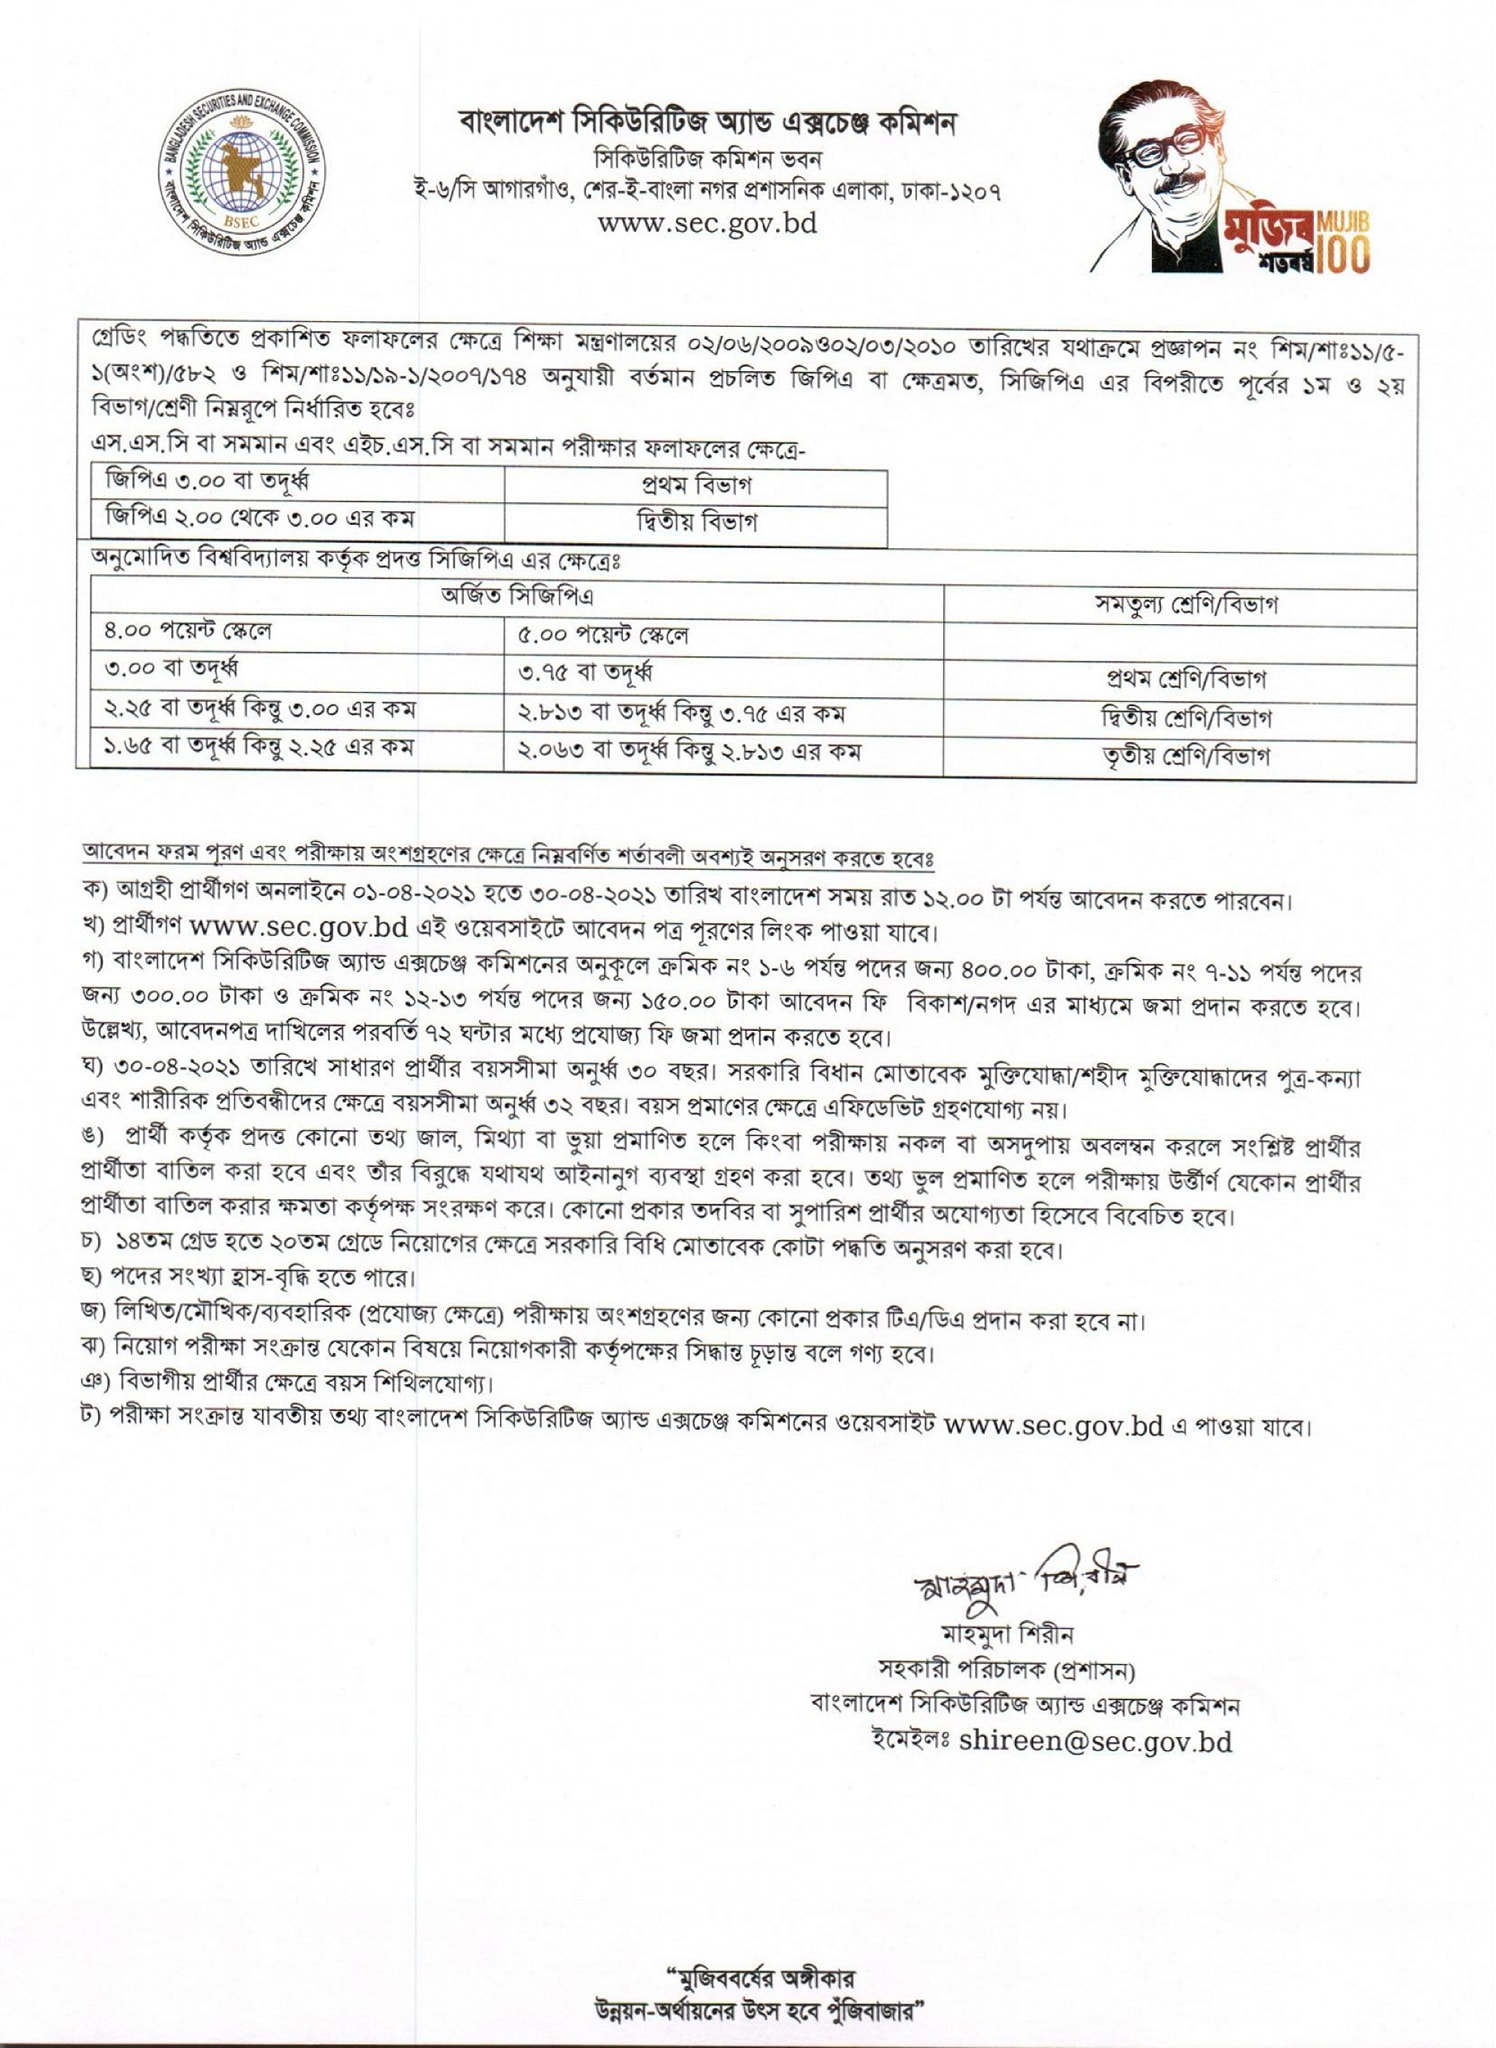 Bangladesh Securities and Exchange Commission Job Circular 2021